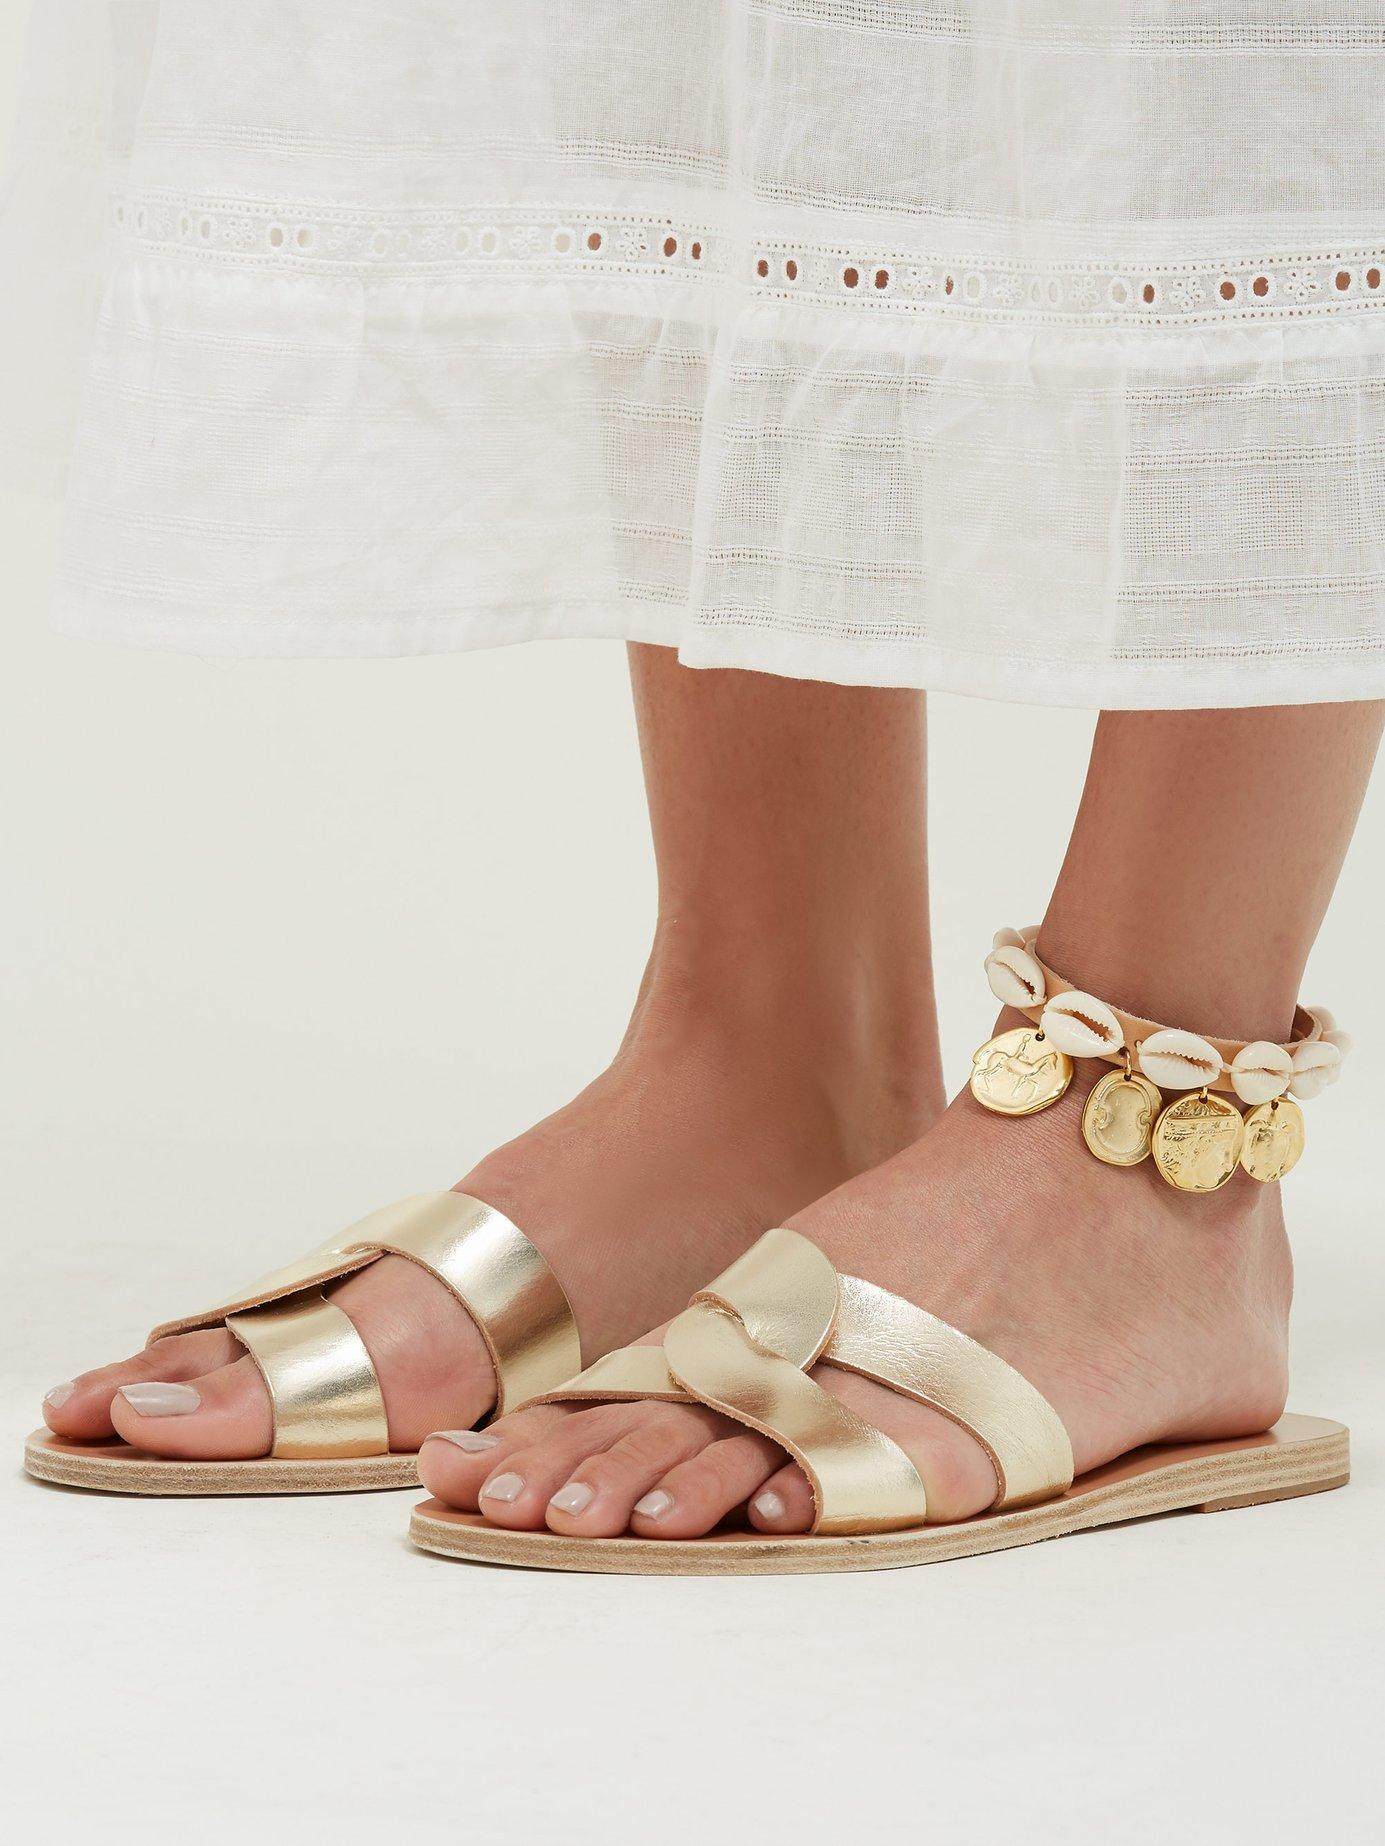 Lyst - Ancient Greek Sandals Puka Shell And Coin Charm